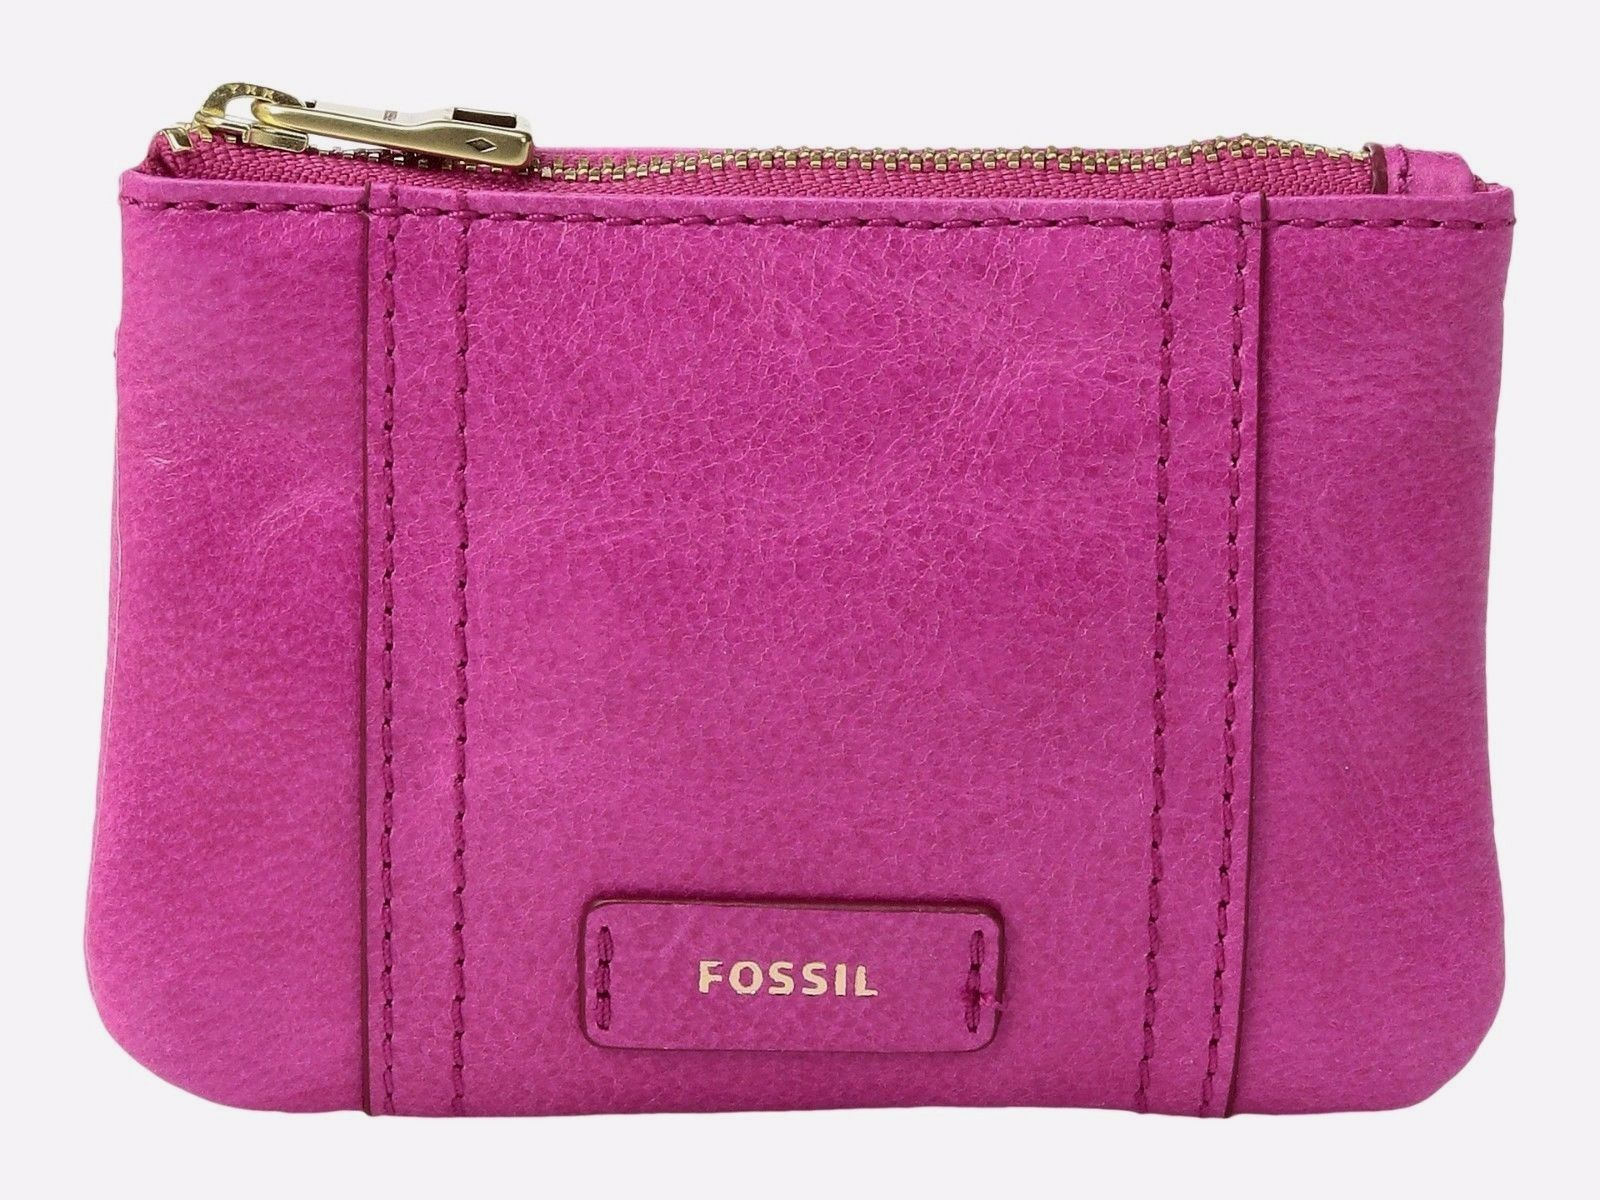 New Fossil Women's Emma Zip Leather Coin Wallet Hot Pink